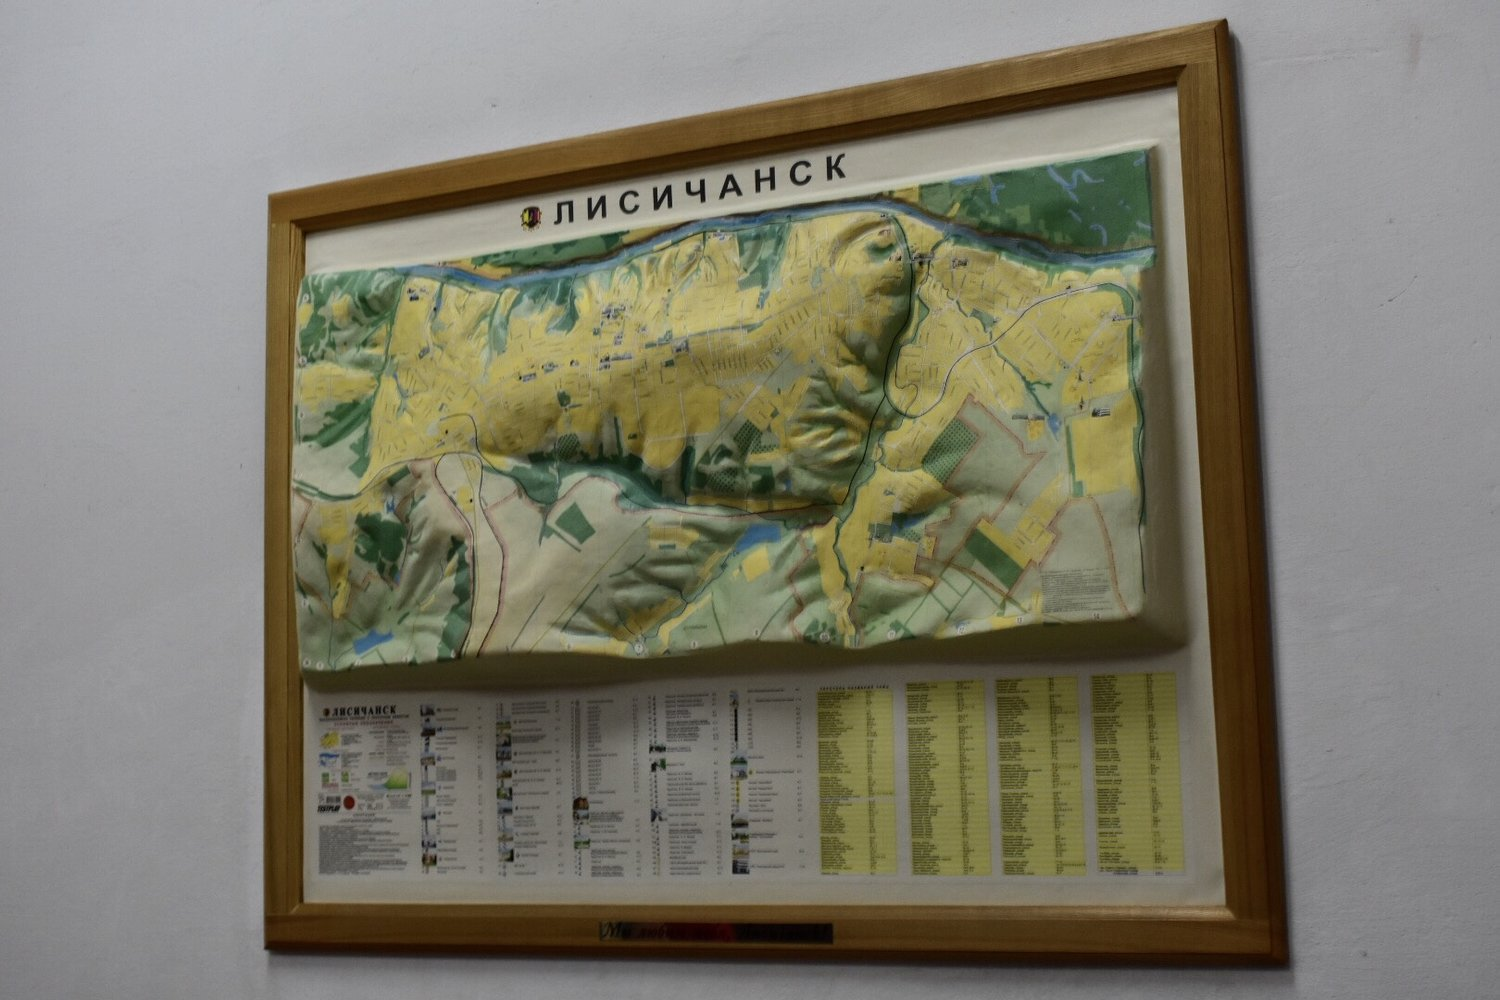 Lysychansk topographical map, Lysychansk Regional Museum